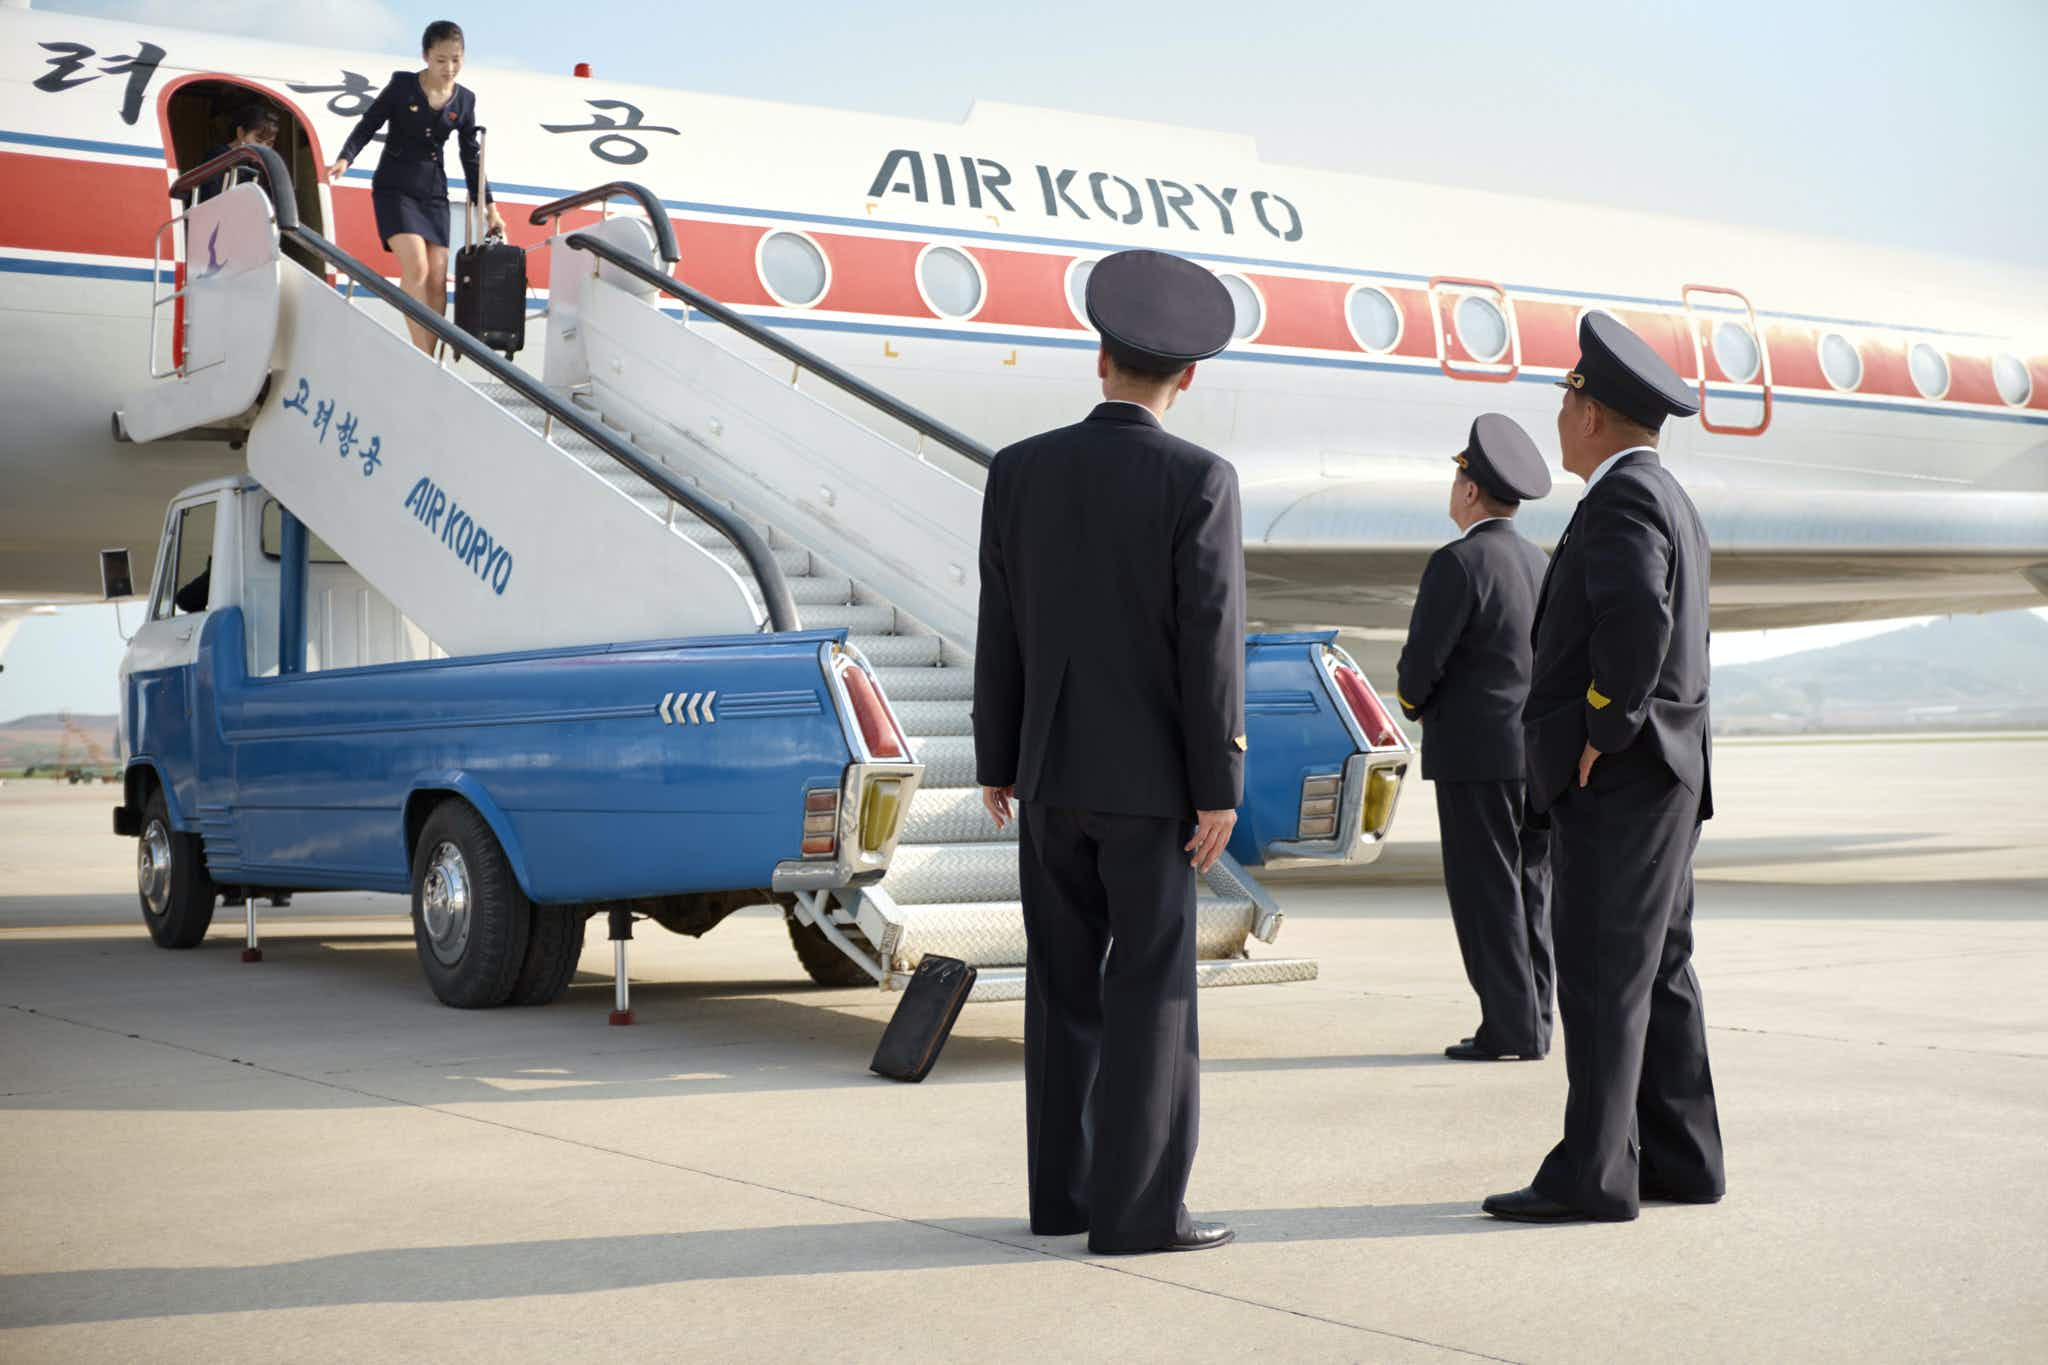 Get a behind-the-scenes look at North Korea's state-run airline